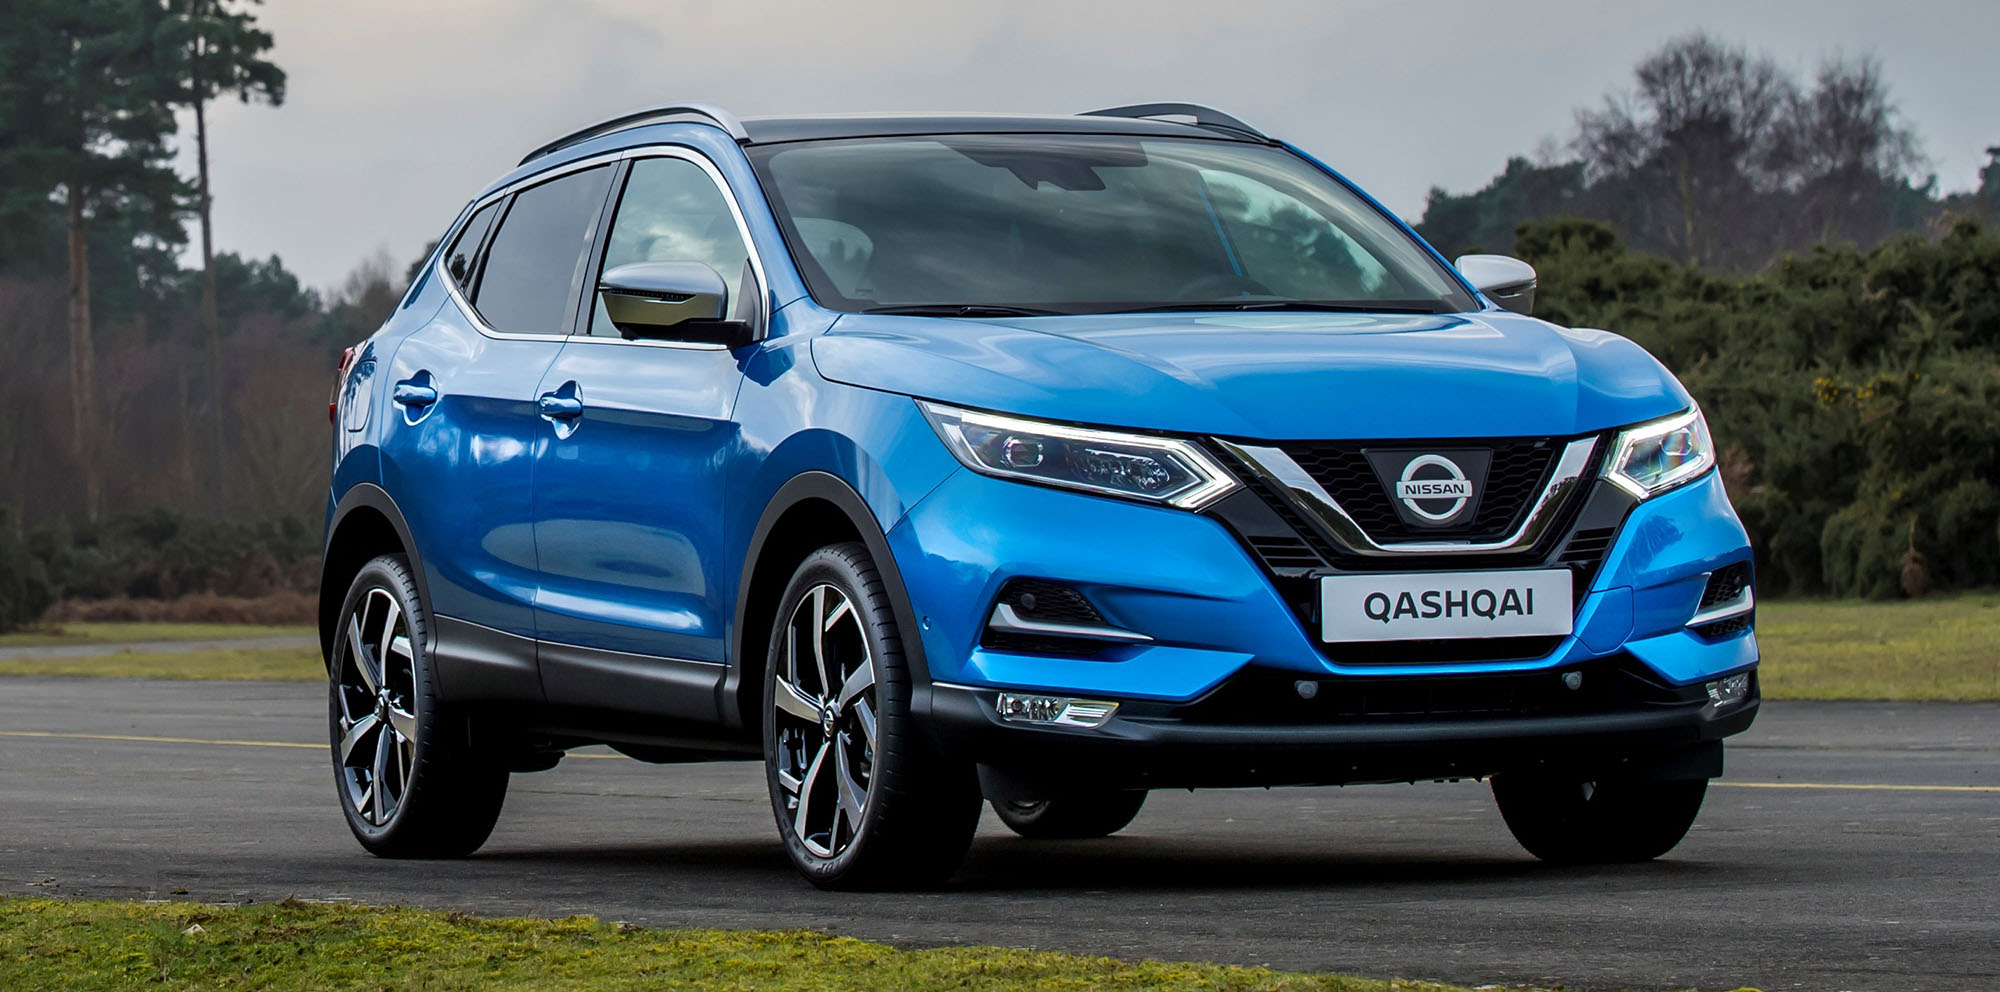 Ford Fusion 2018 >> 2018 Nissan Qashqai facelift revealed, Australian debut due next year - photos | CarAdvice